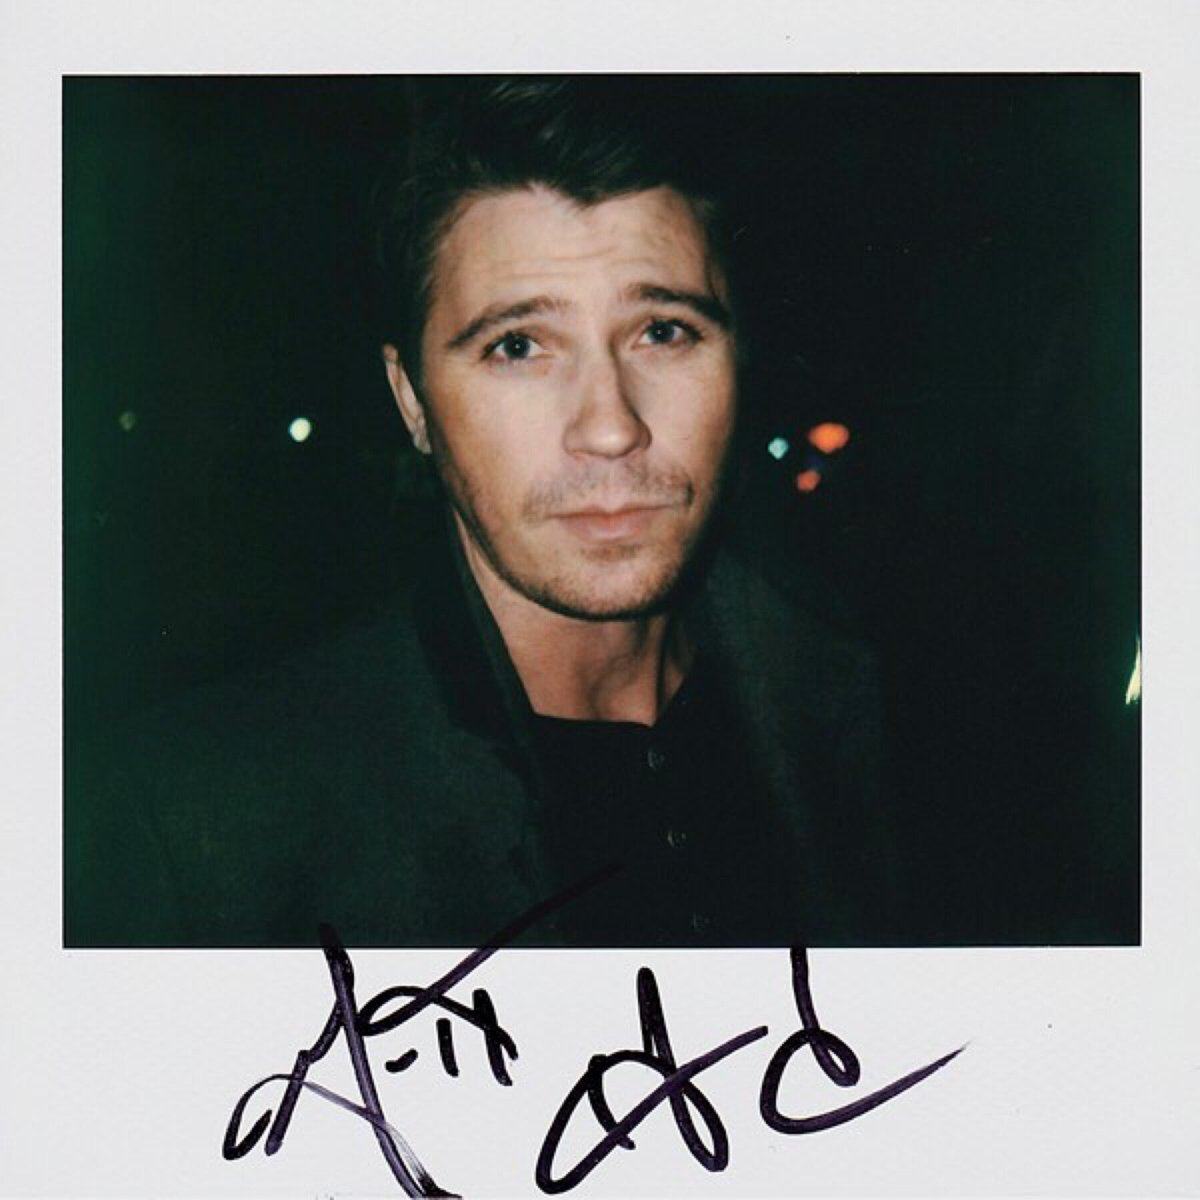 Garrett Hedlund in 2018 promoting 'Mosaic' & CHarlie Hunnam in 2011 at SDCC for 'Sons if Anarchy'.  portroids <br>http://pic.twitter.com/4pLeEUJmZs